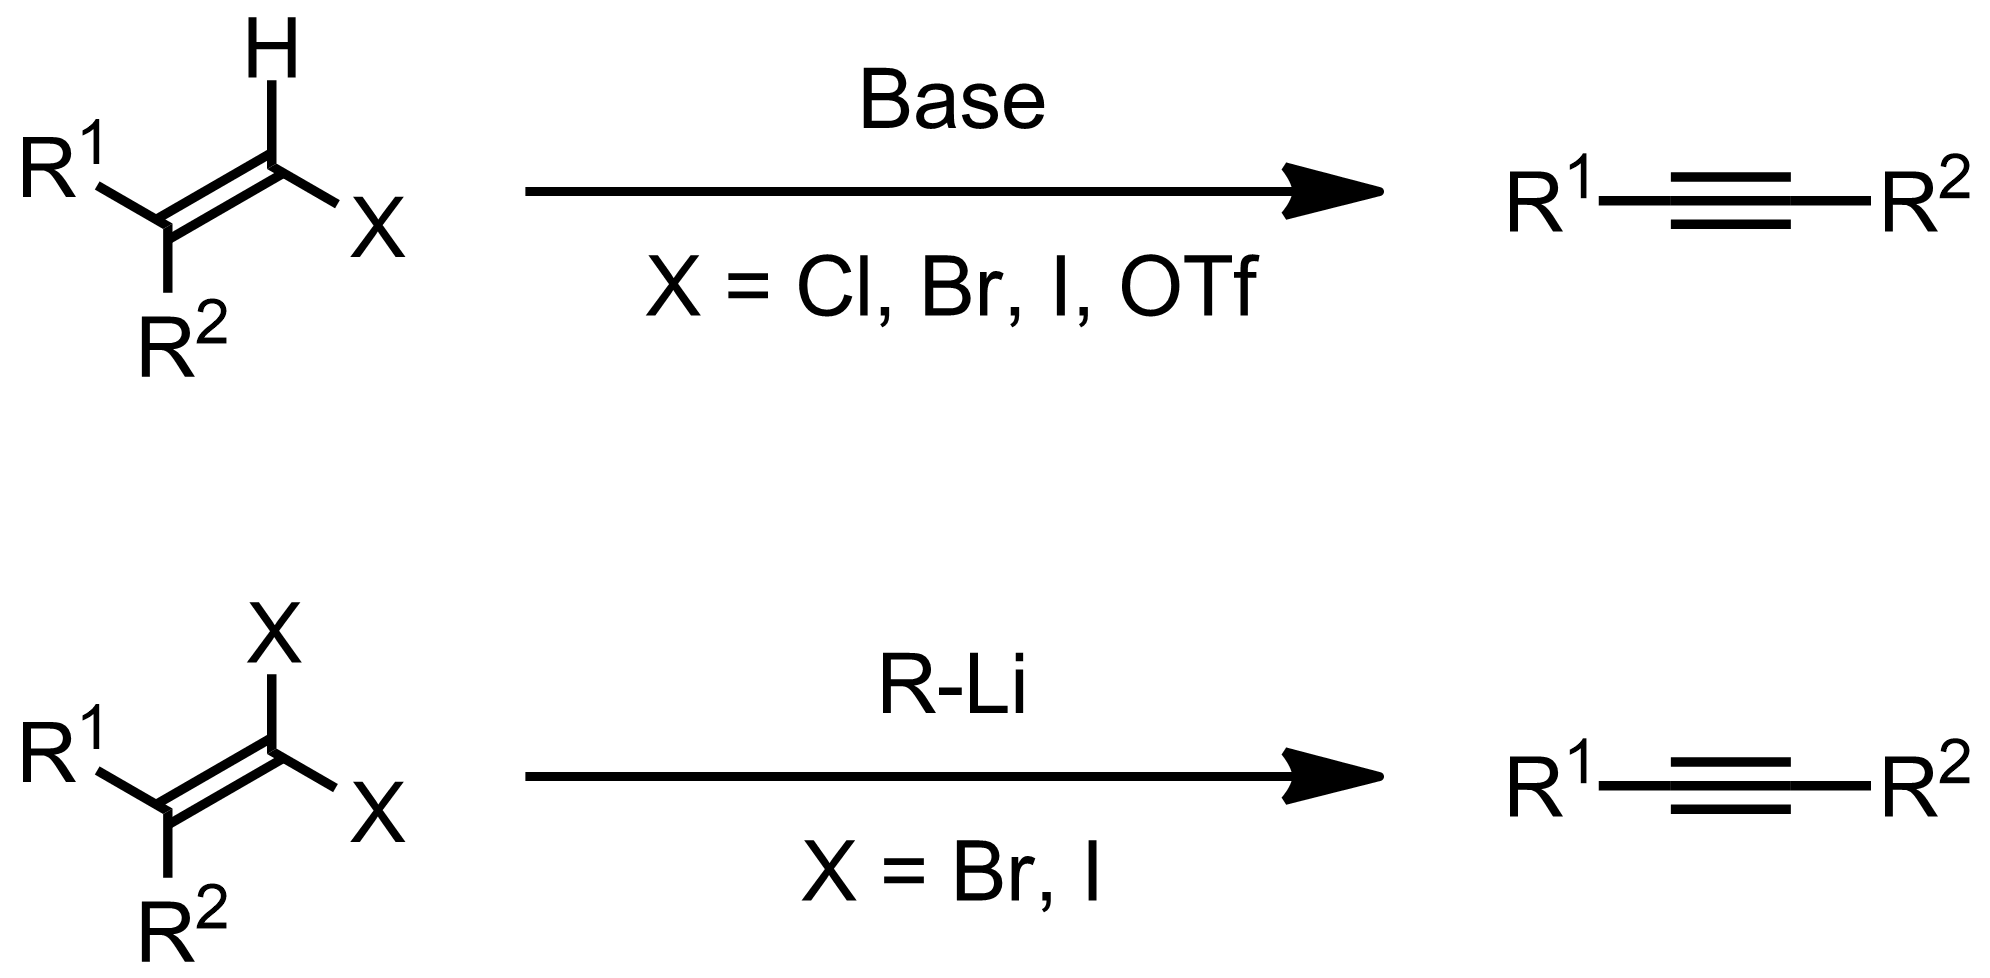 Schematic representation of the Fritsch-Buttenberg-Wiechell Rearrangement.